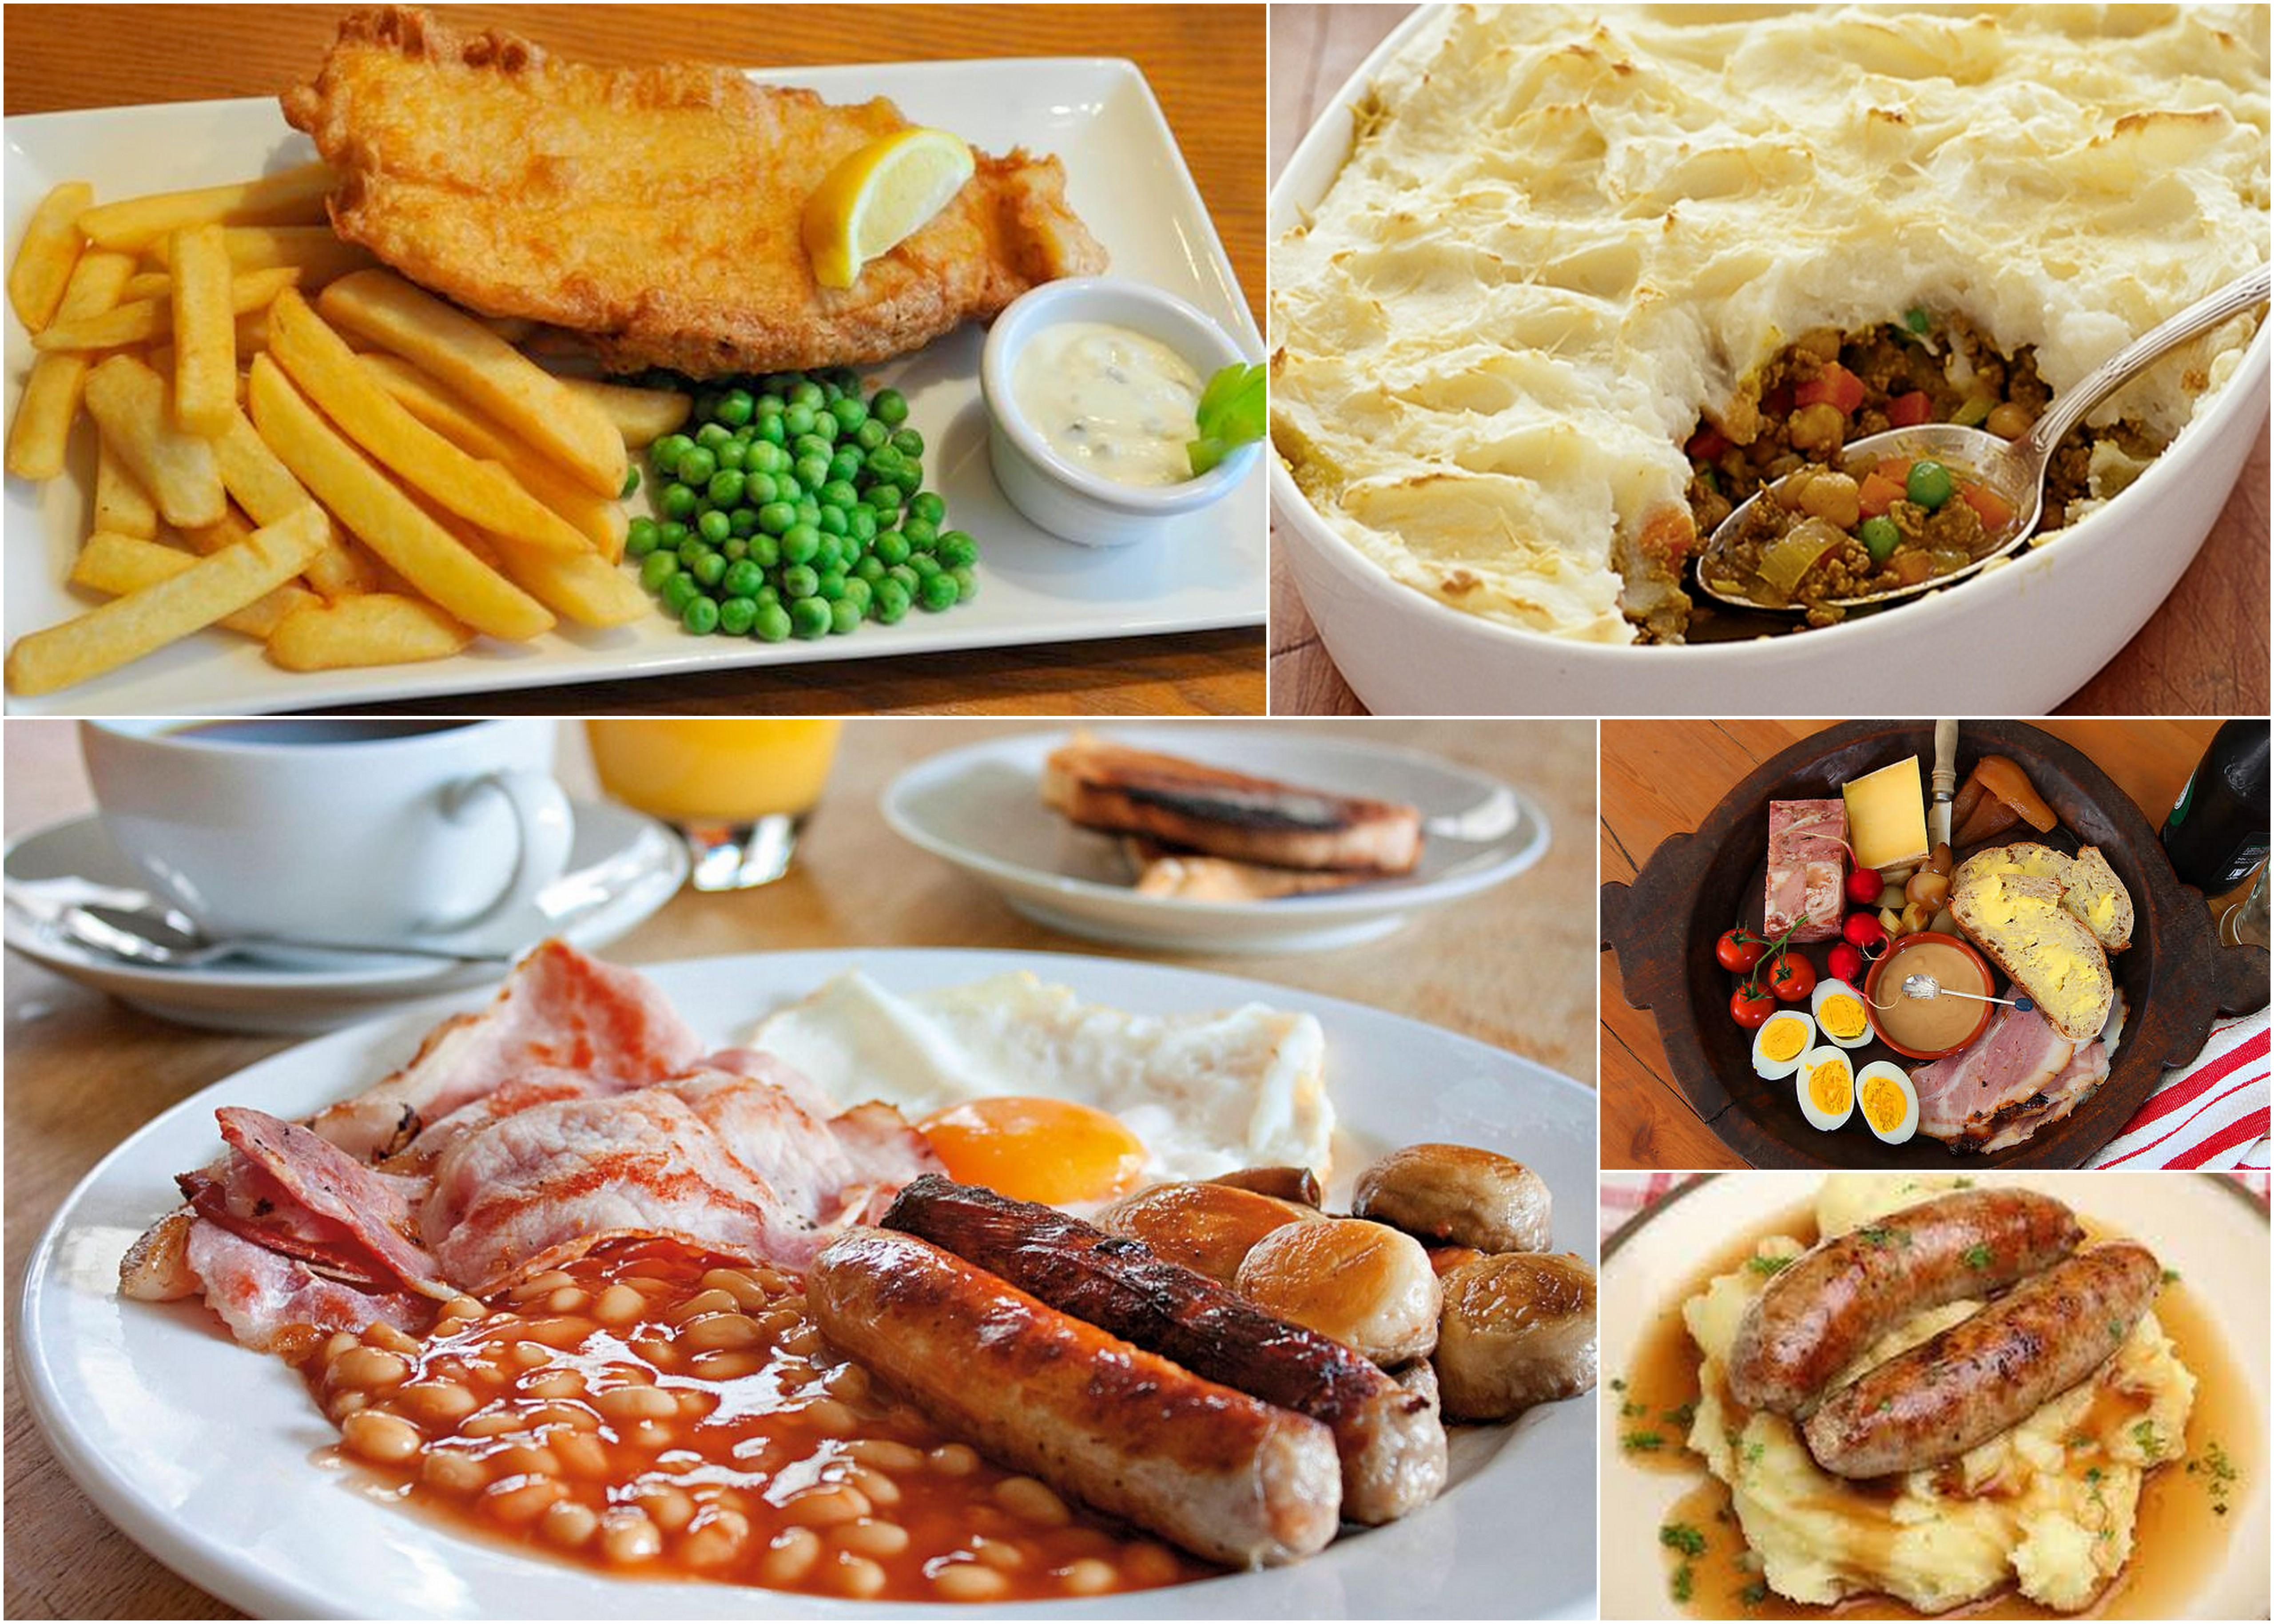 5 British Dishes You Have to Try at Least Once